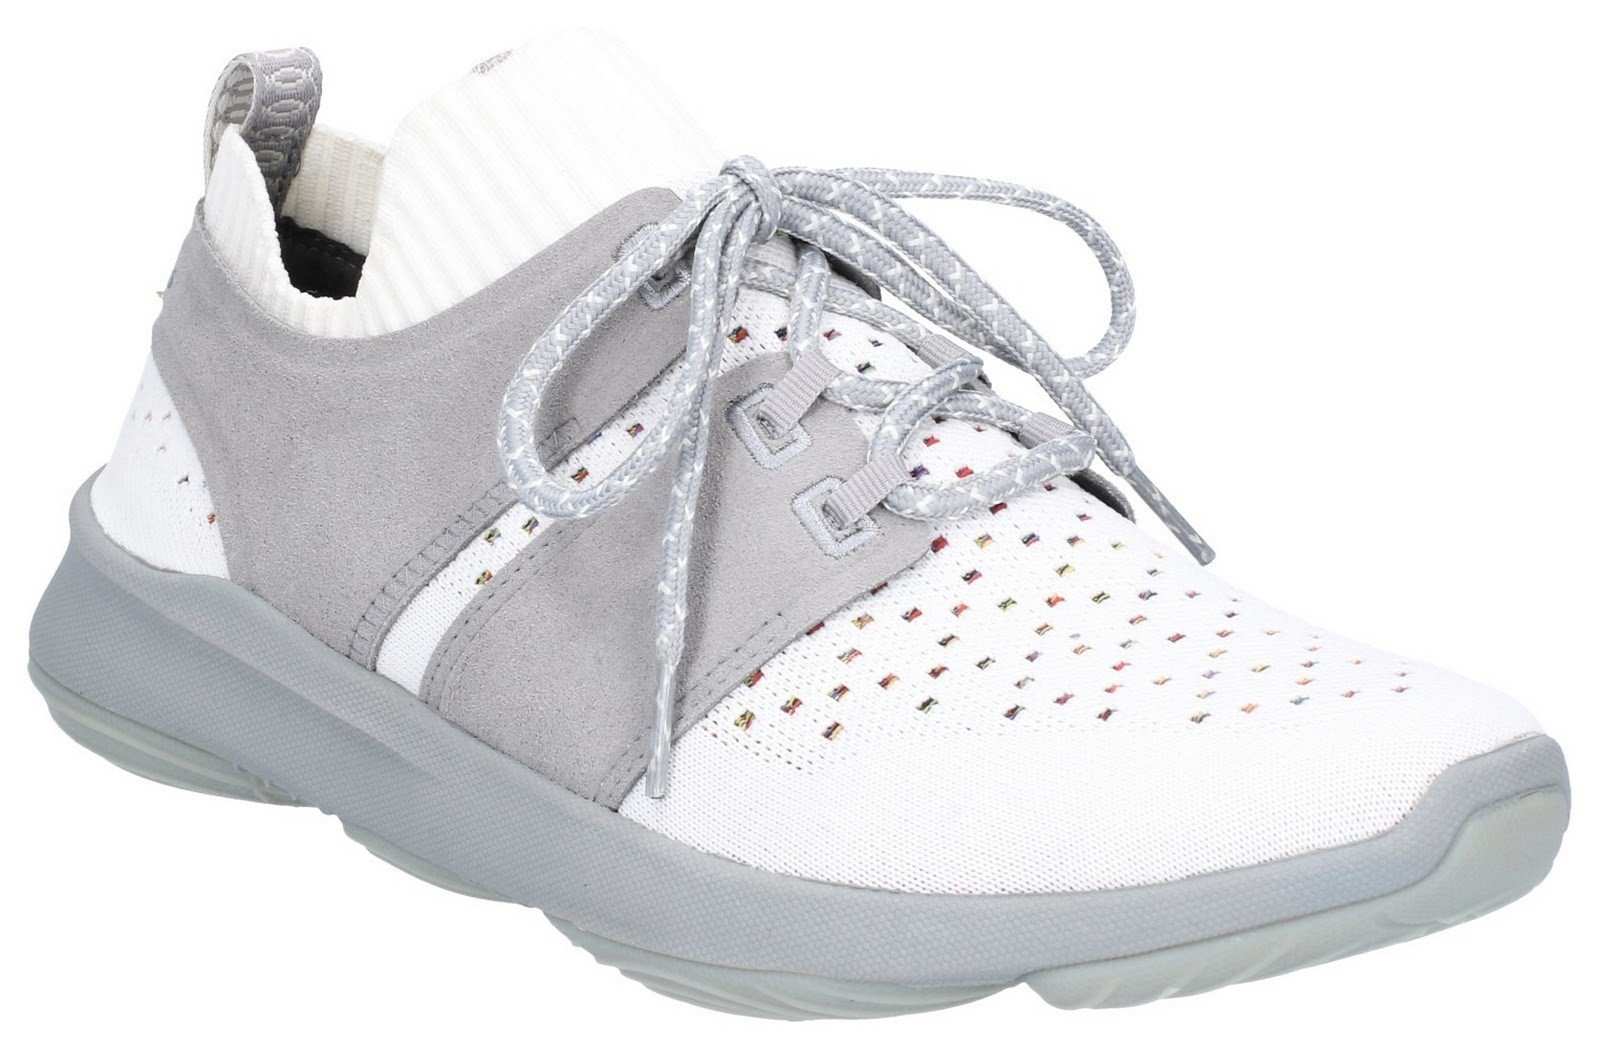 Hush Puppies Men's World BounceMax Lace Up Trainer Ivory Knit 30003 - Ivory Knit 6